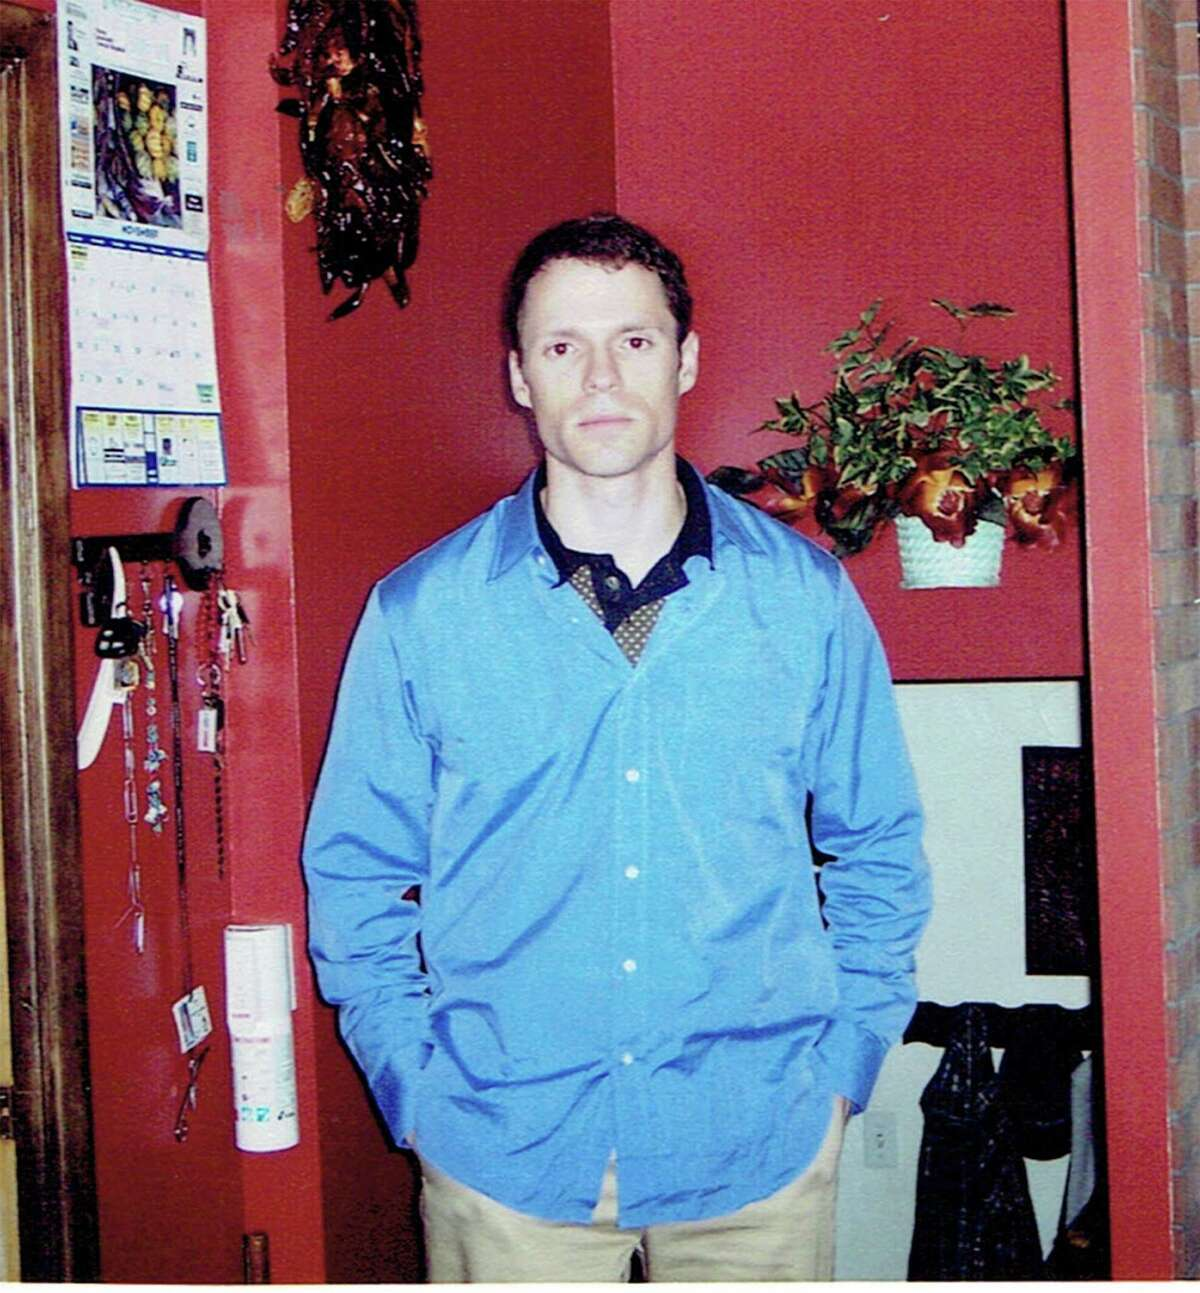 Steven Bellino is photographed at his parents' home in Parma, Ohio.